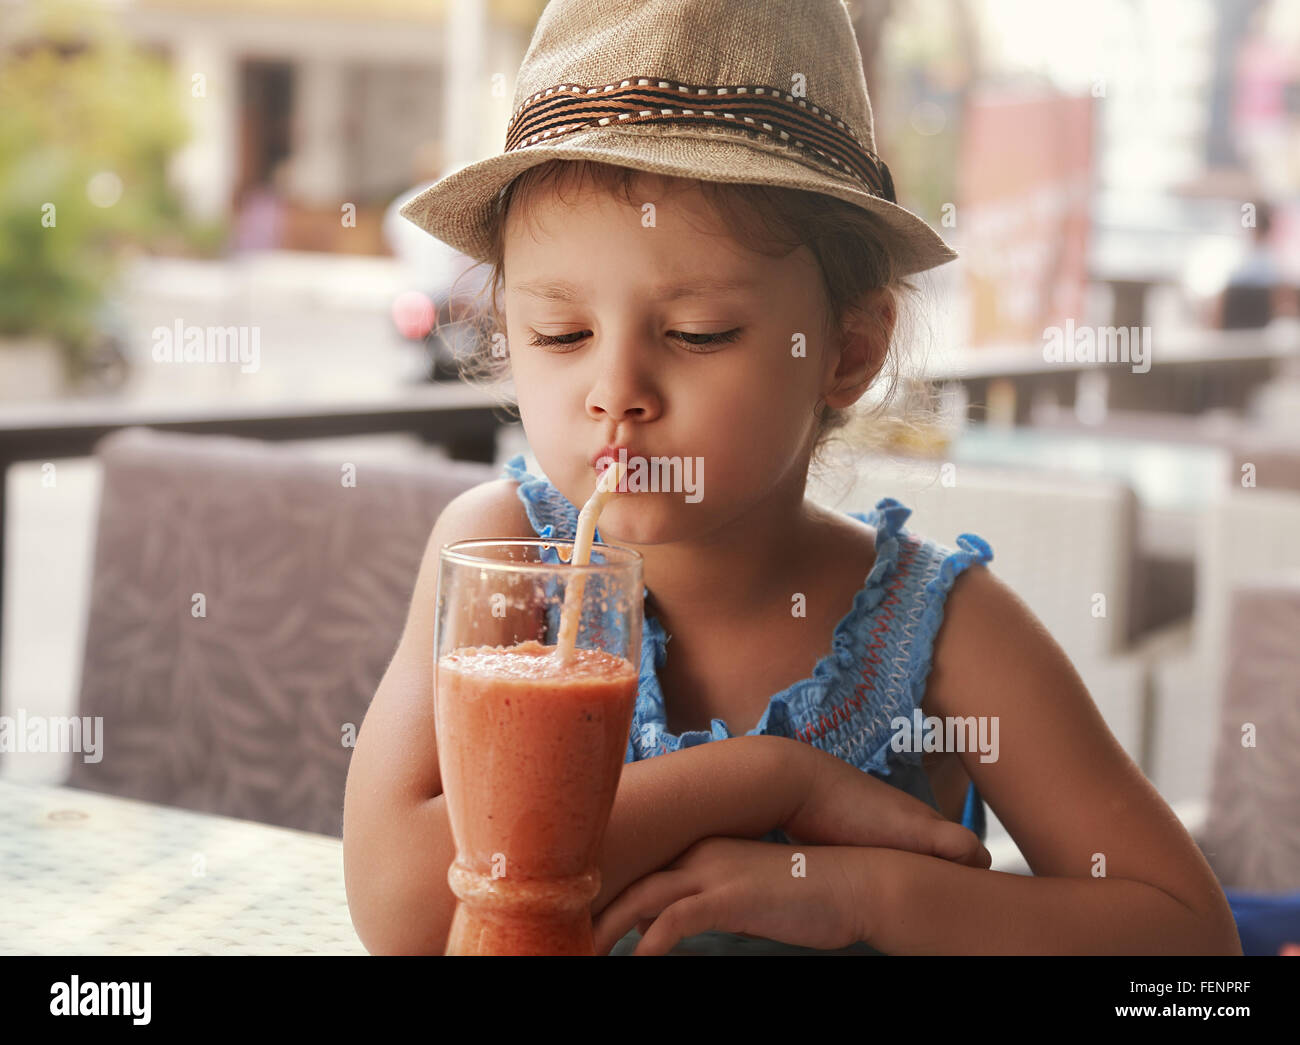 Fun kid girl in hat smoothie potable de verre de jus dans Street Ville cafe Photo Stock